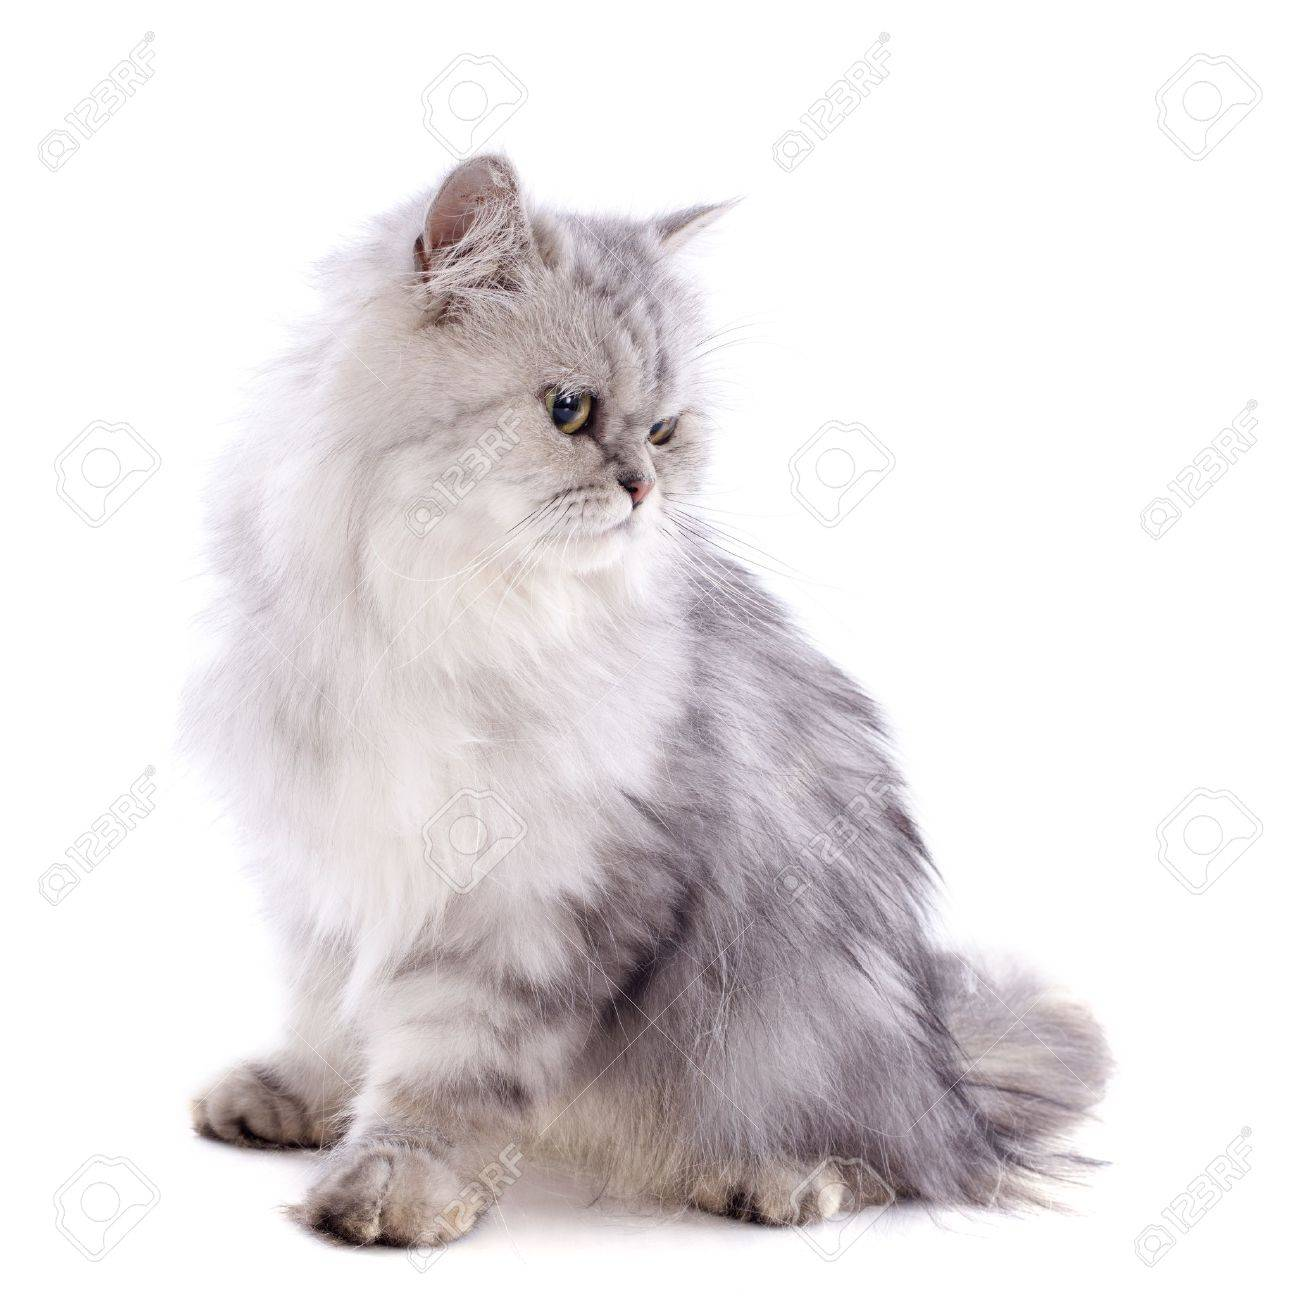 persian cat in front of a white background Stock Photo - 20752476